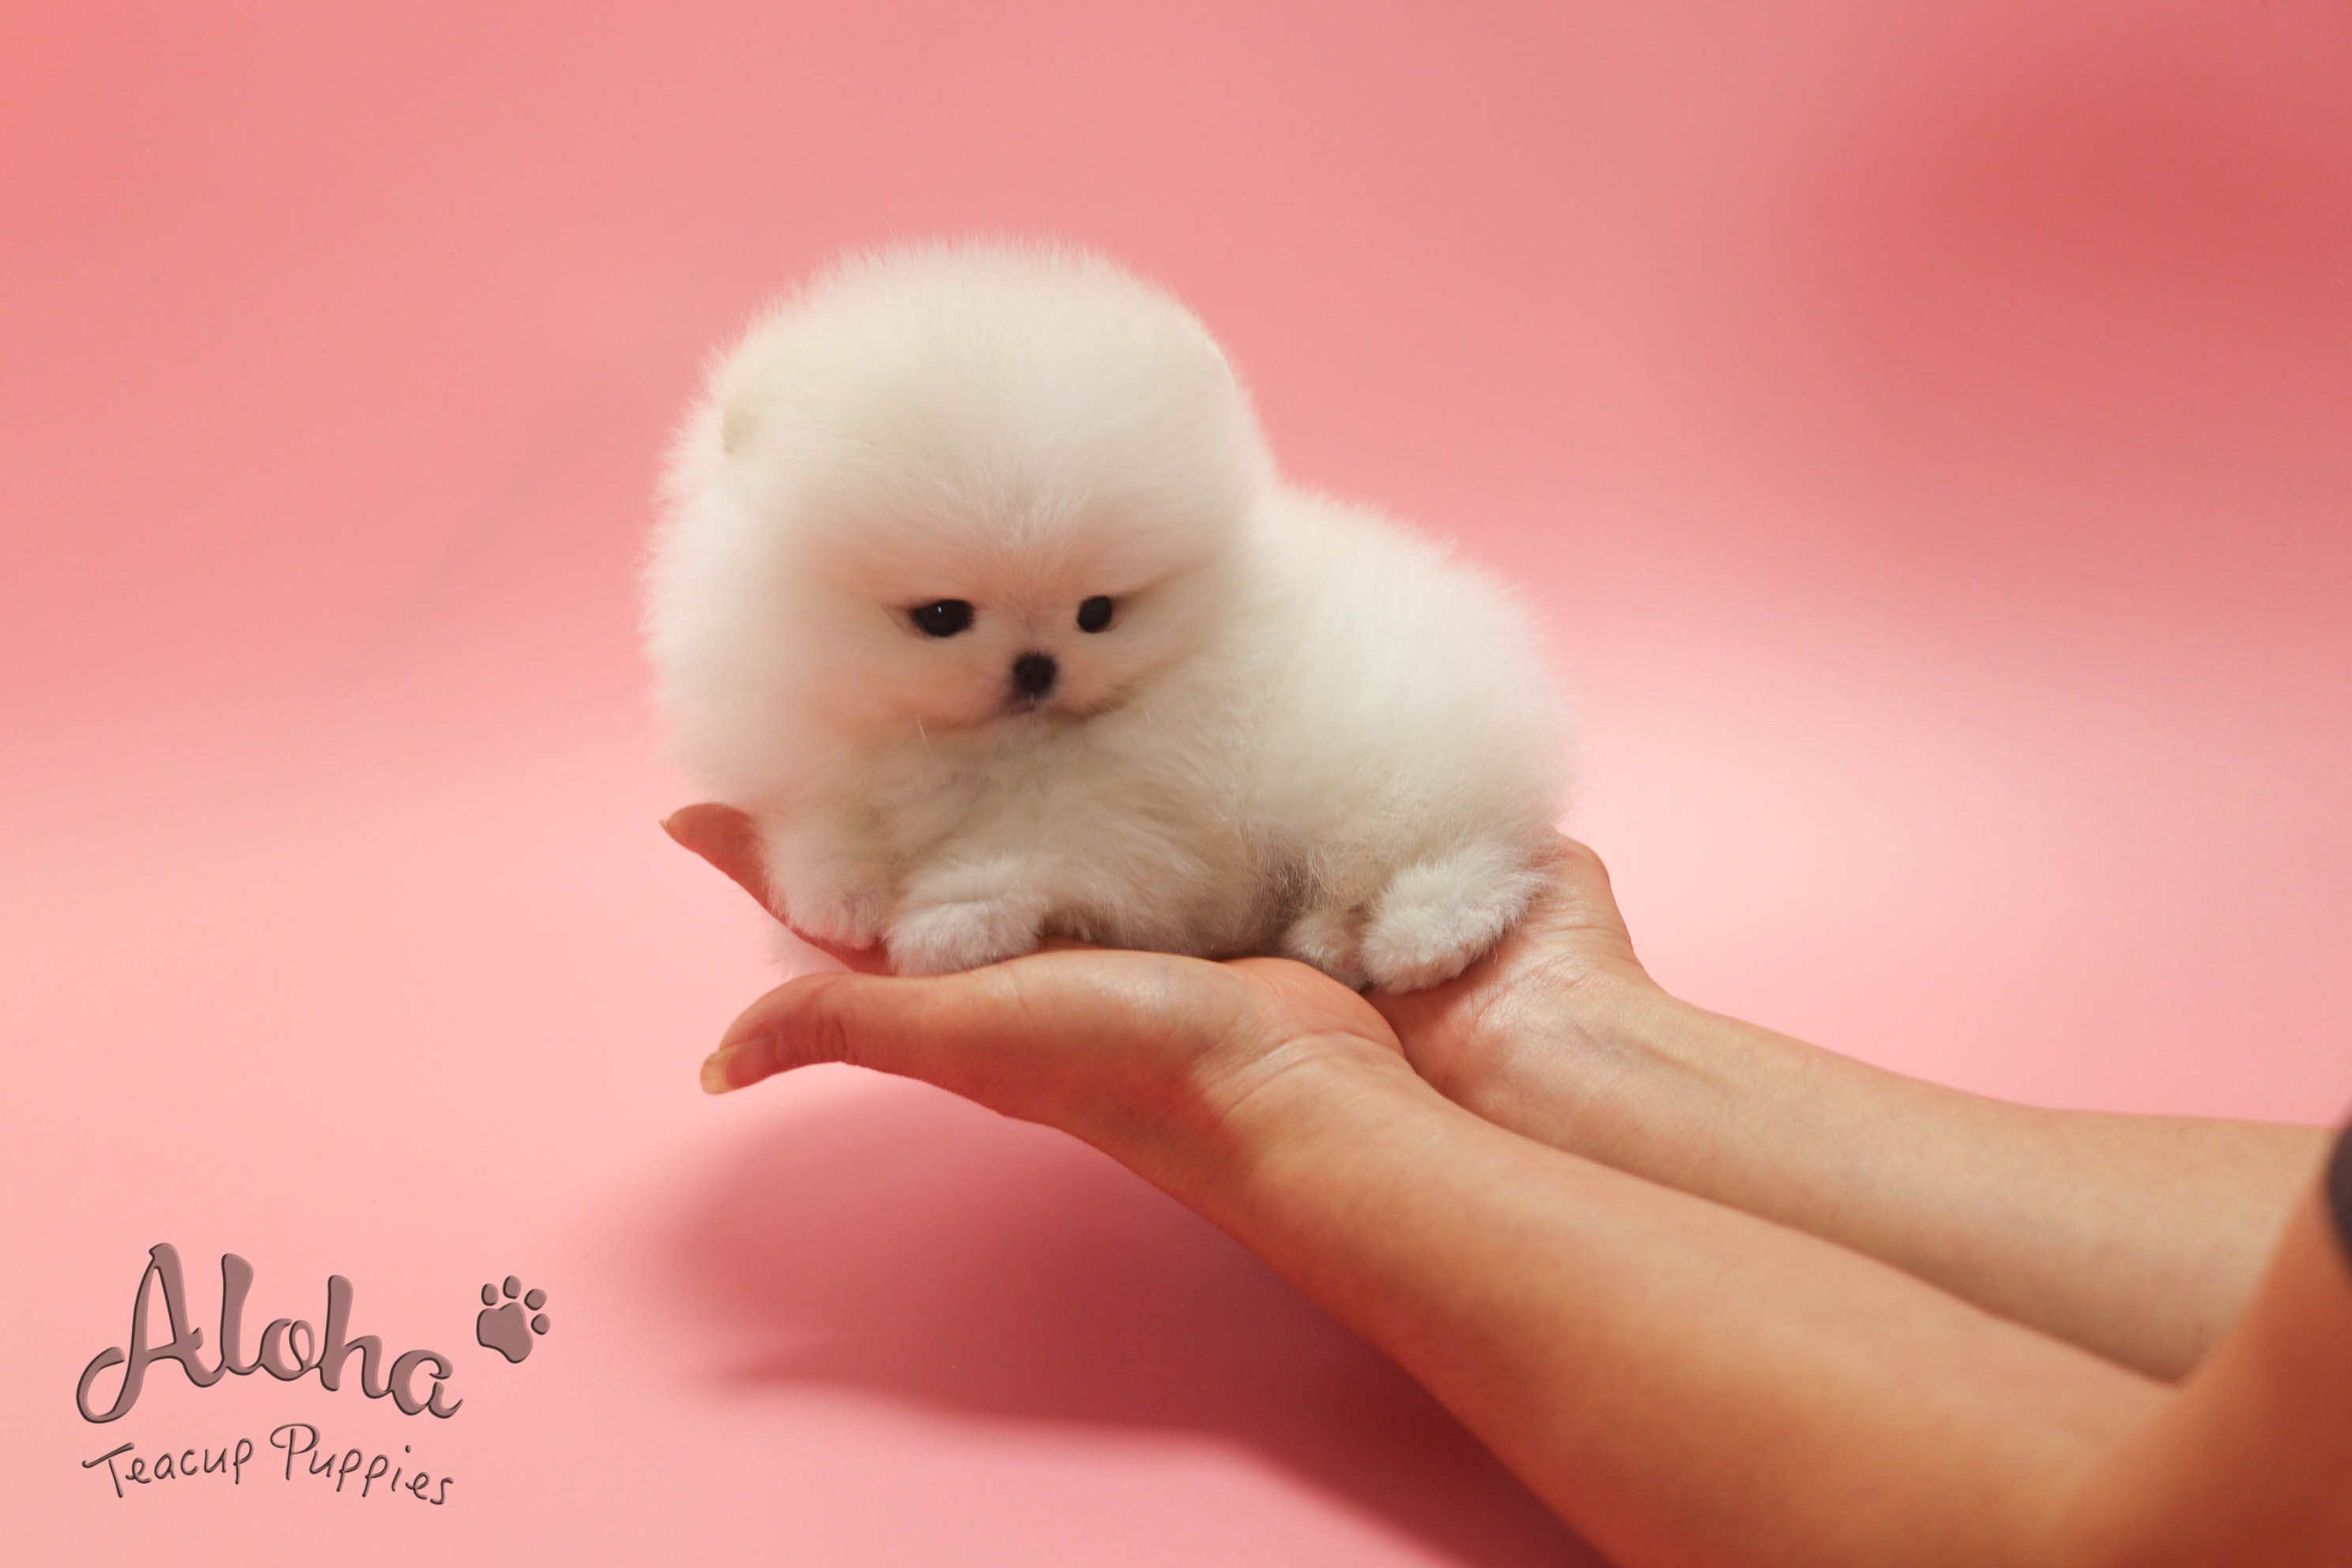 Micro Teacup Pomeranian Https Www Alohateacuppuppies Com Teacuppomeranian Teacuppomeran In 2020 Cute Teacup Puppies Teacup Puppies For Sale Teacup Puppies